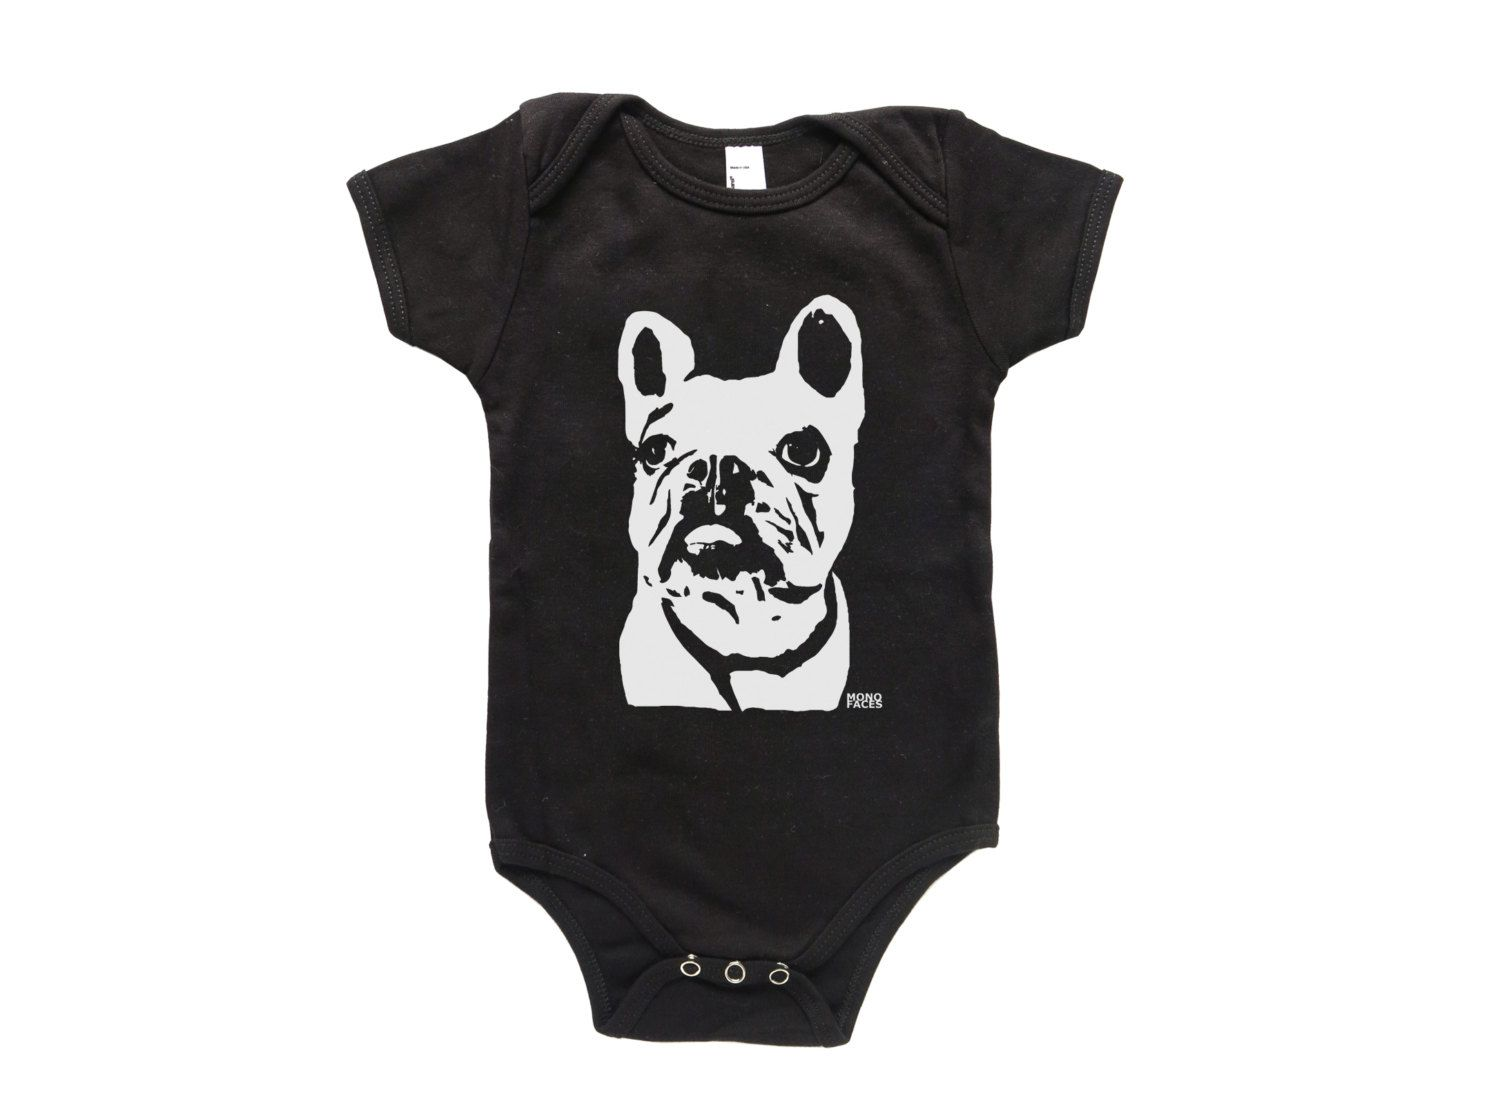 French Bulldog Baby Clothes One Piece Frenchie Shirt Gift Dog Themed Birthday Party Shower By